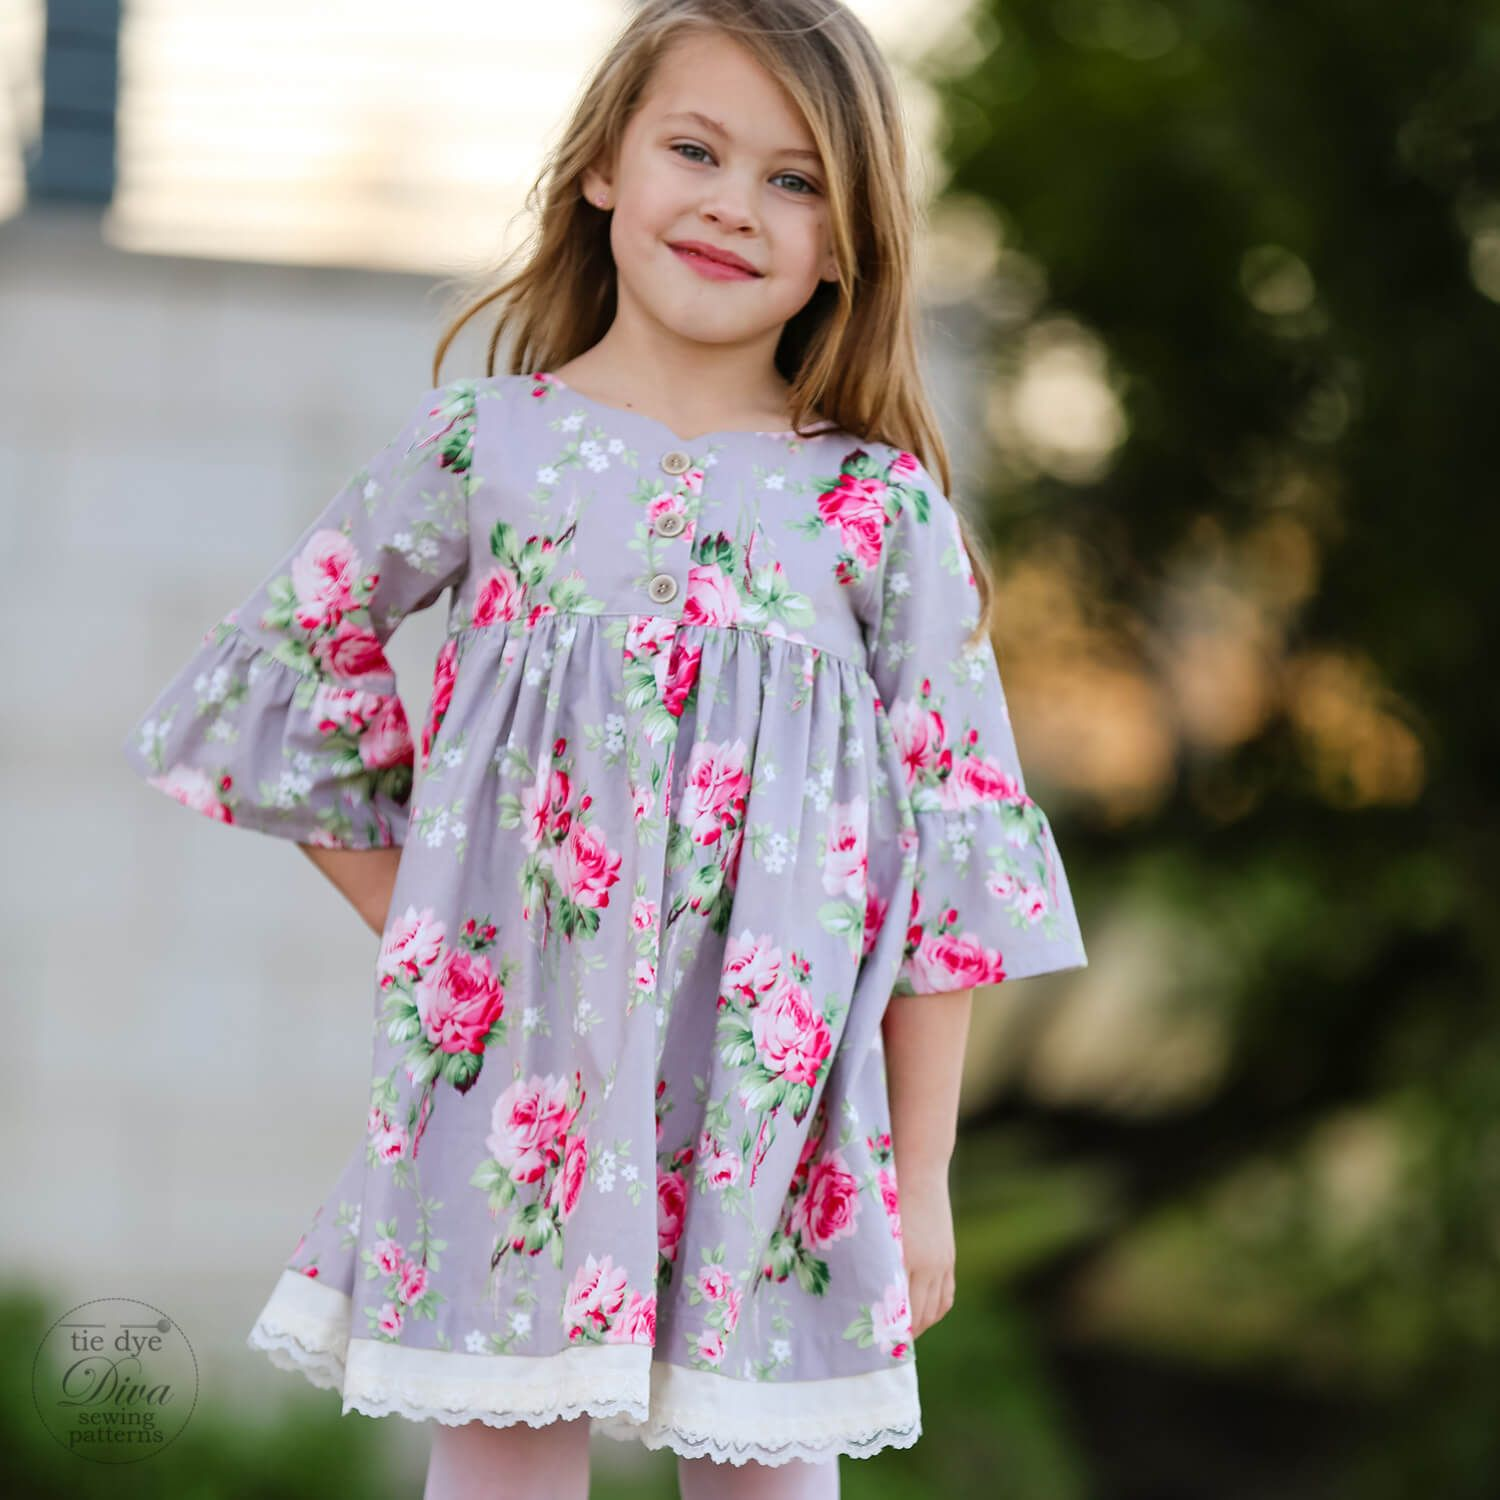 Clementine dress and top for girls months to years